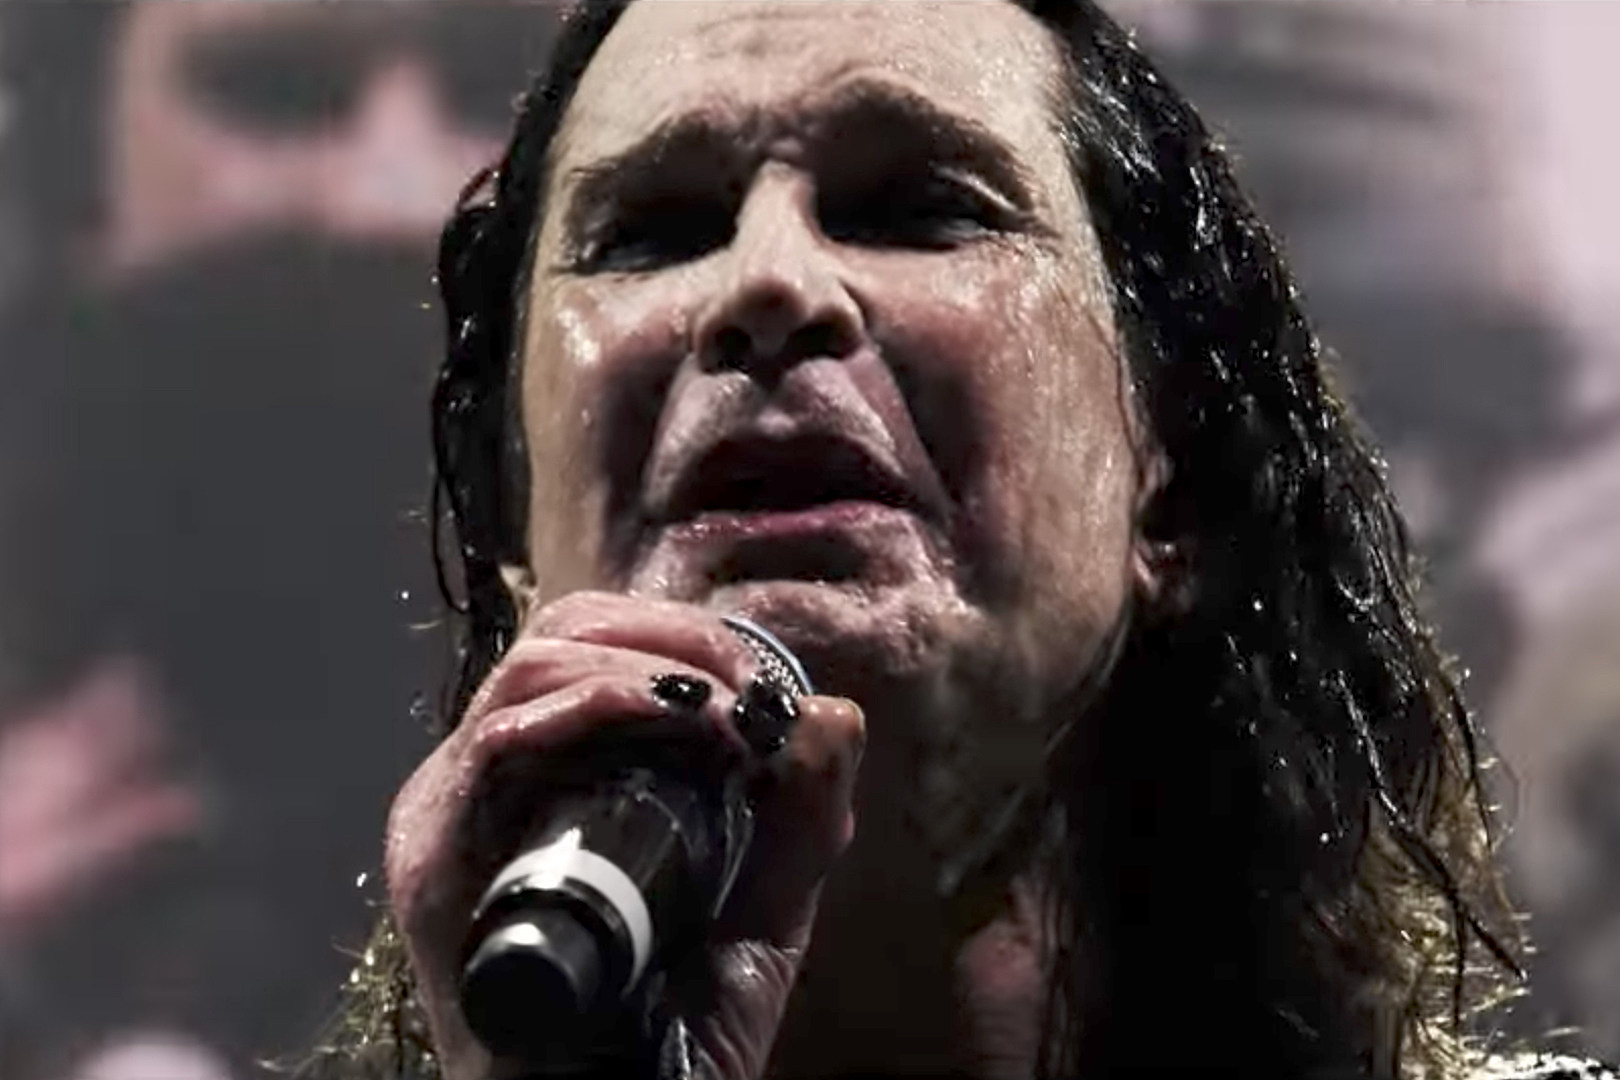 Watch Black Sabbath Deliver a Highly Emotional Performance of 'Paranoid' From 'The End' Concert Film